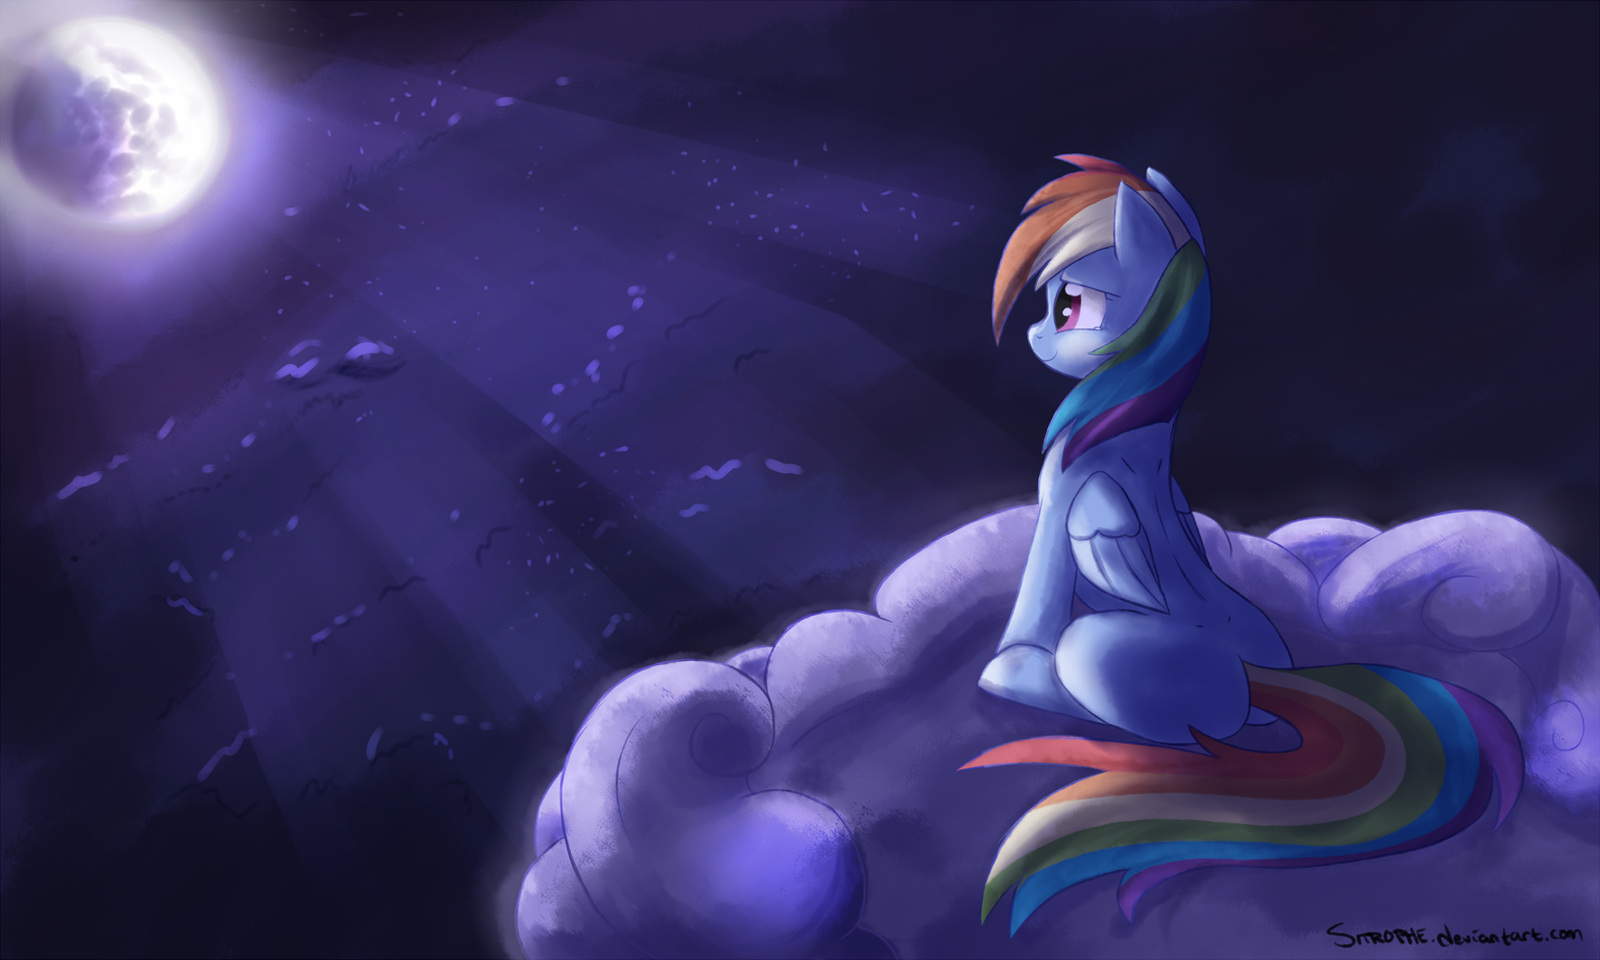 The Moon is Young by Sitrophe